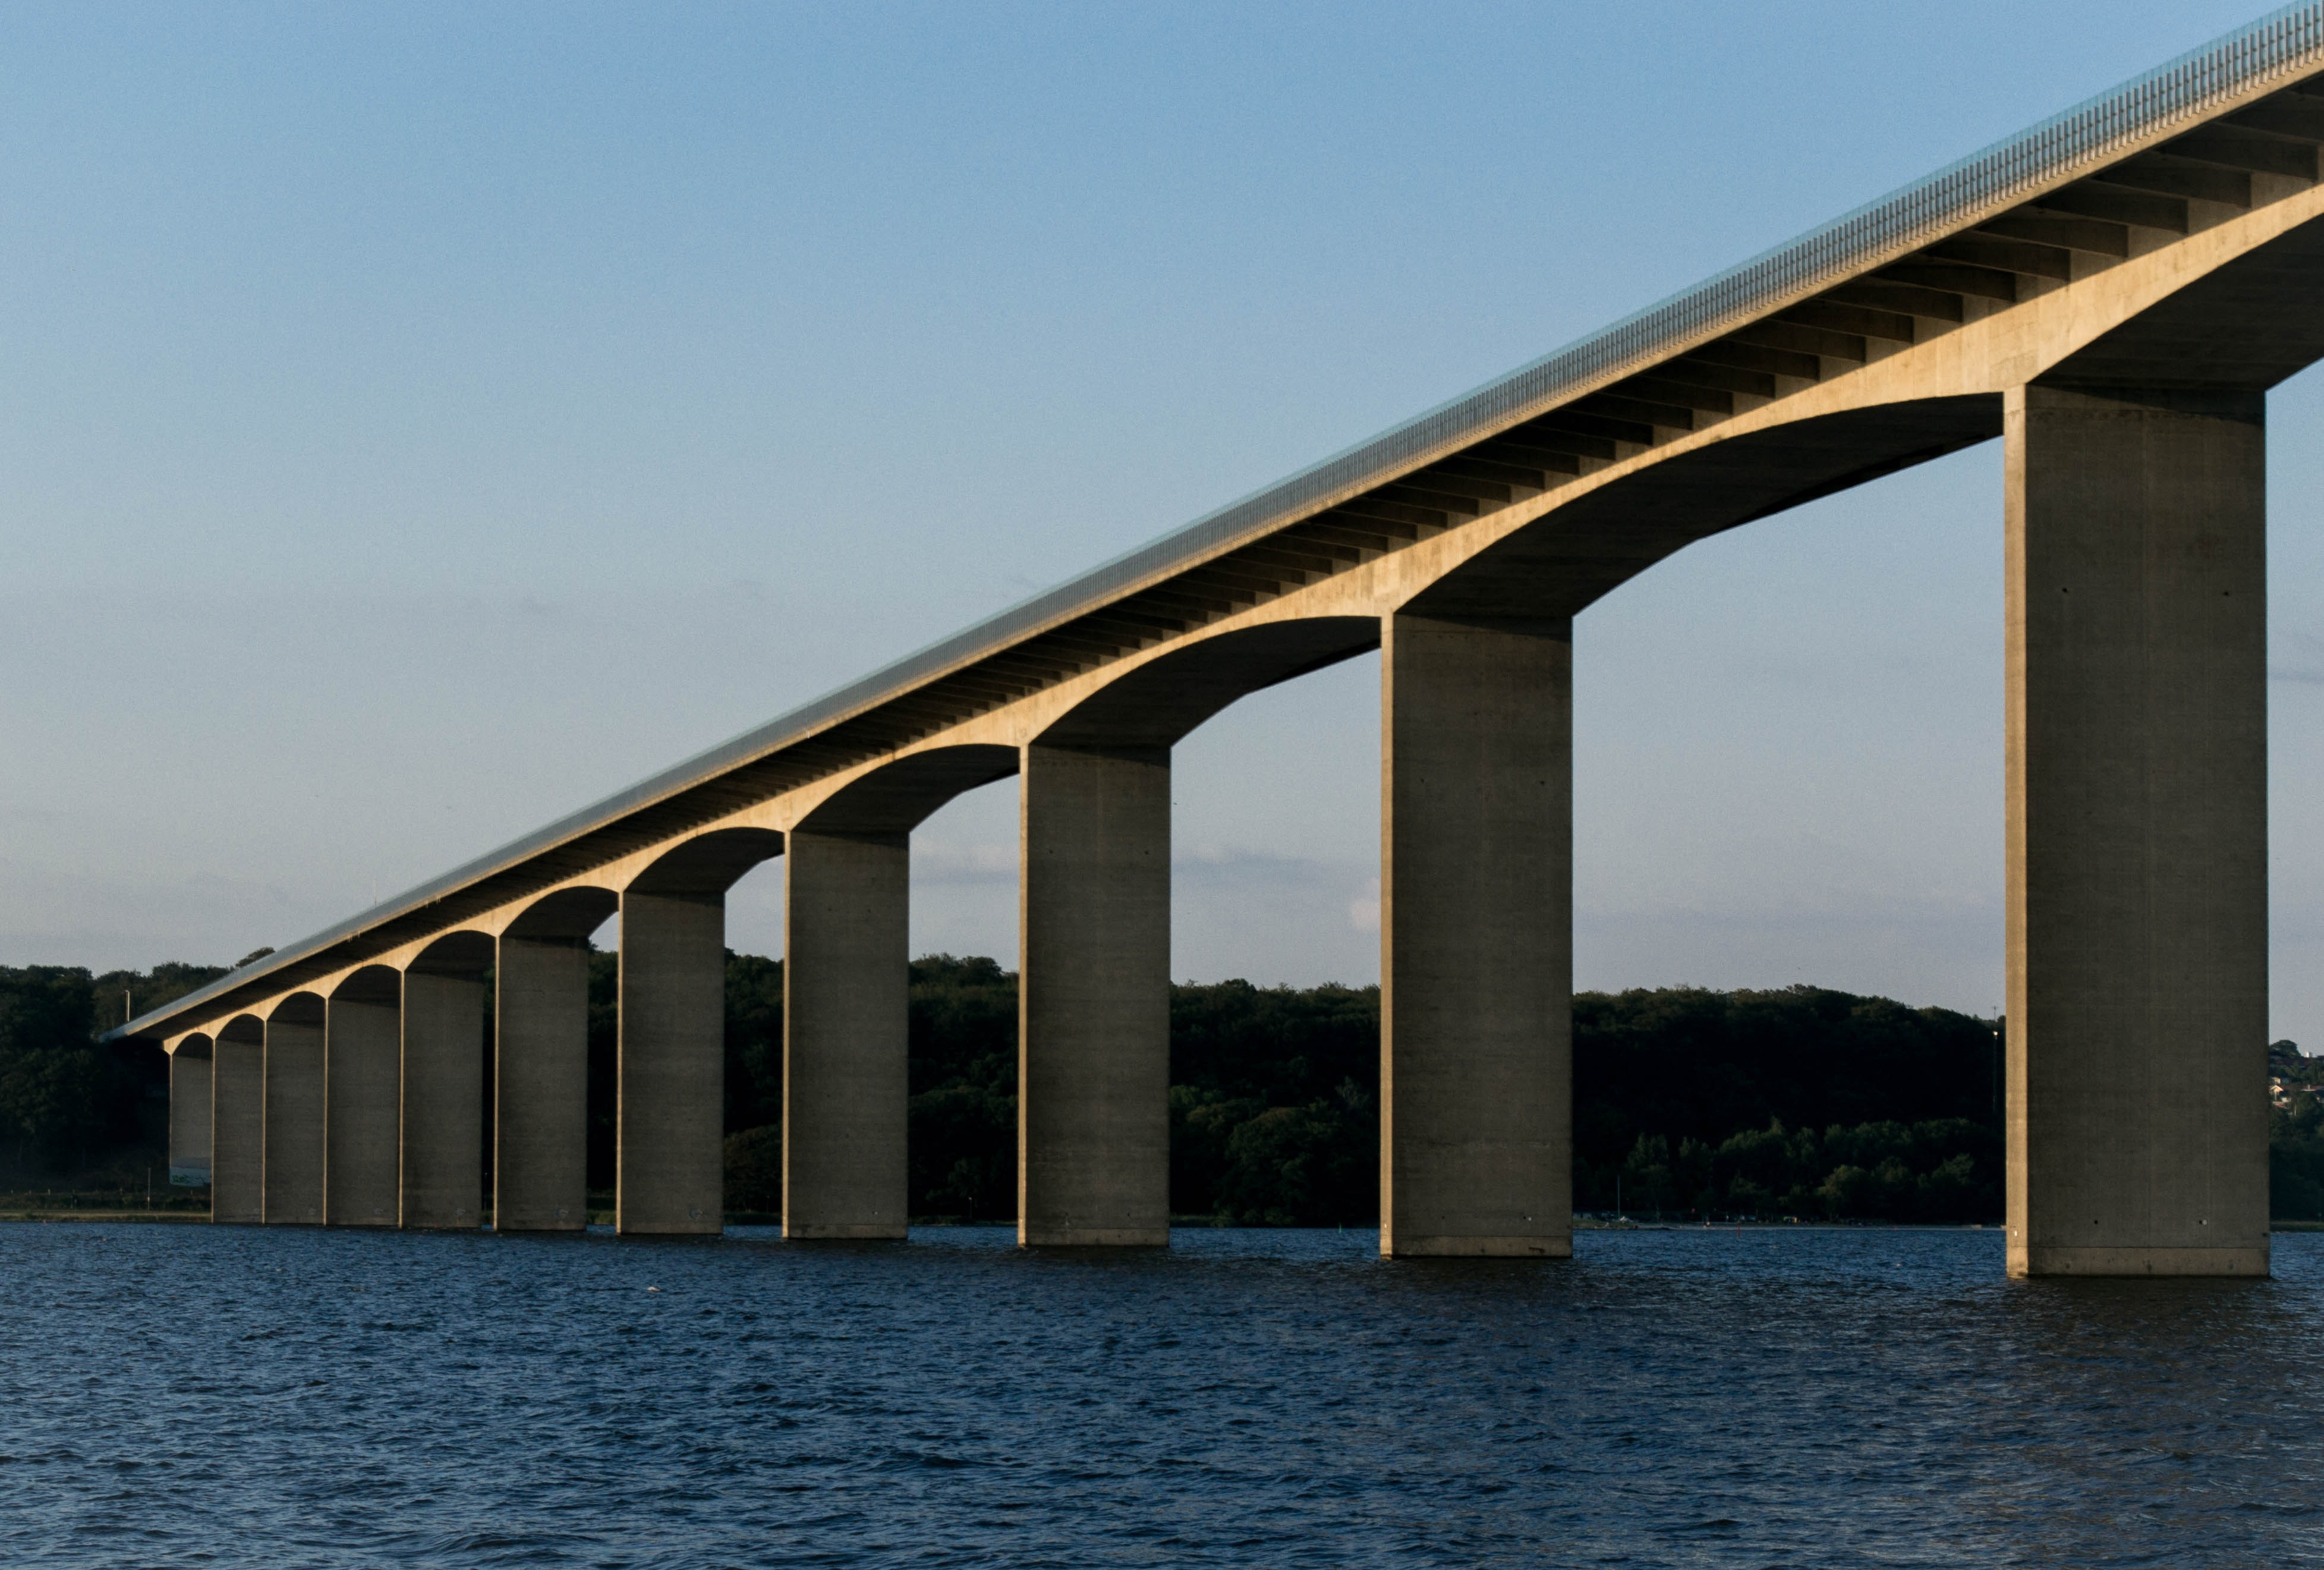 Bridge Near Lake, Architecture, Landscape, Travel, Transportation, HQ Photo